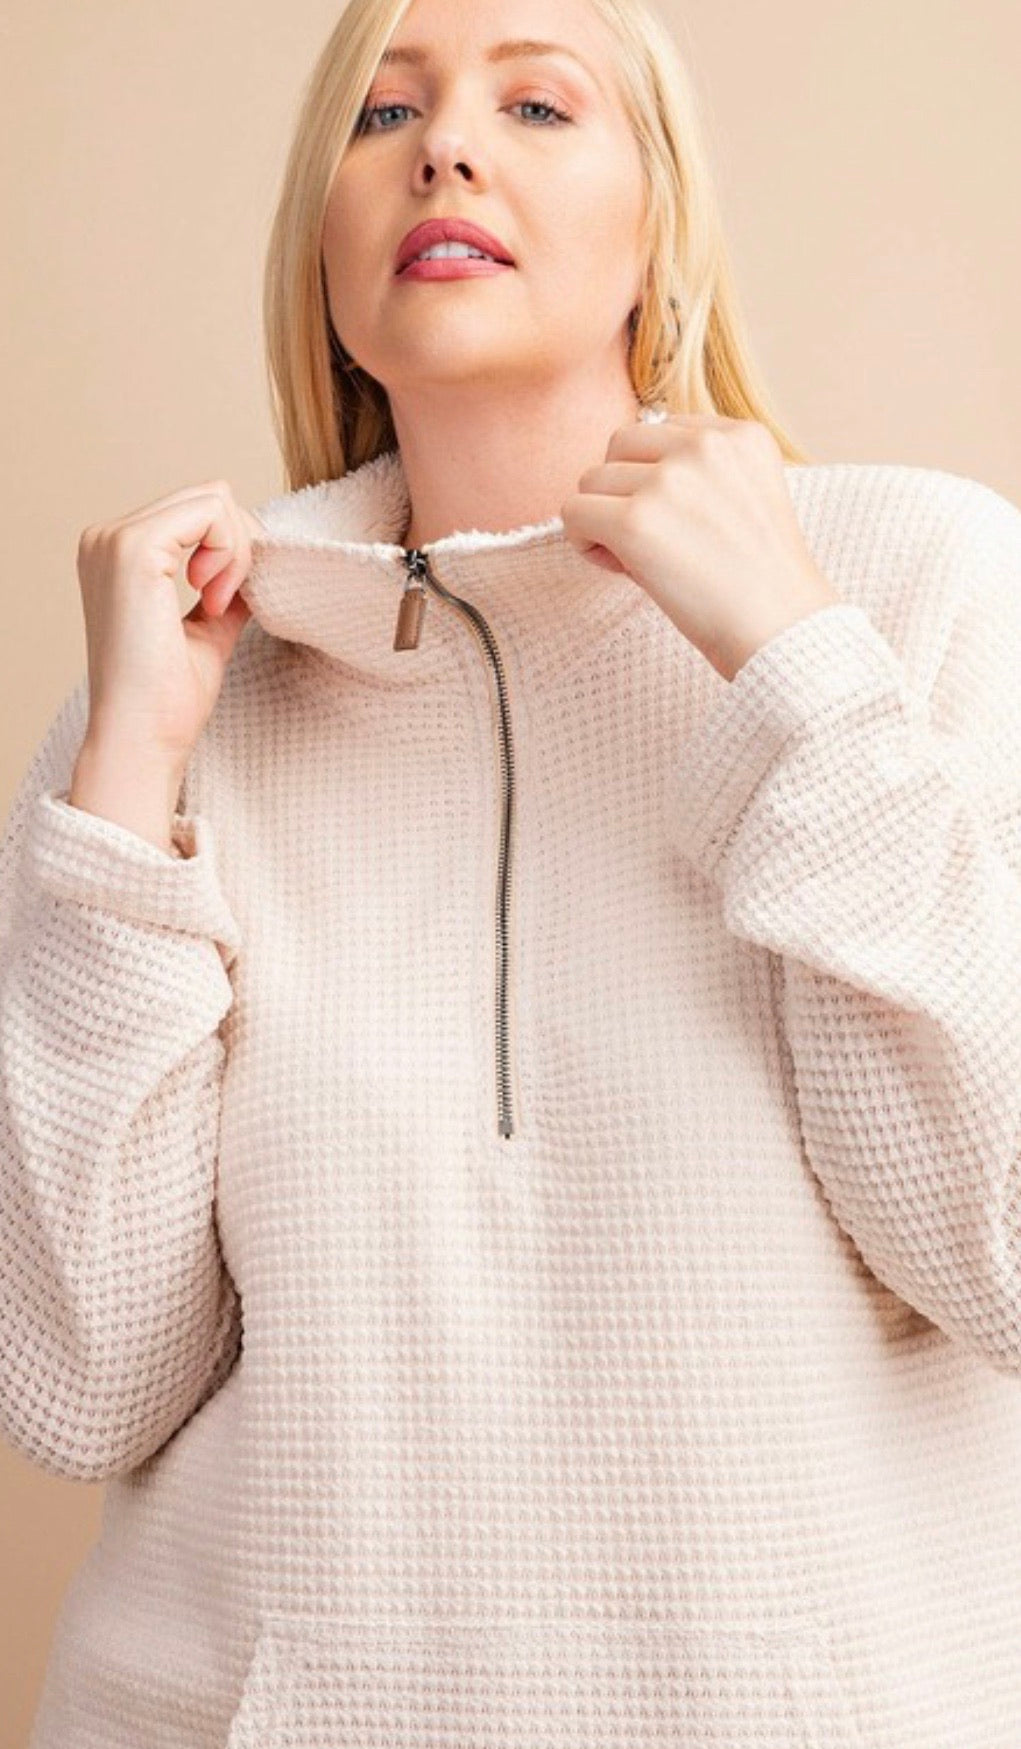 Reversible textured knit top with front zipper | Cheeky Cactus